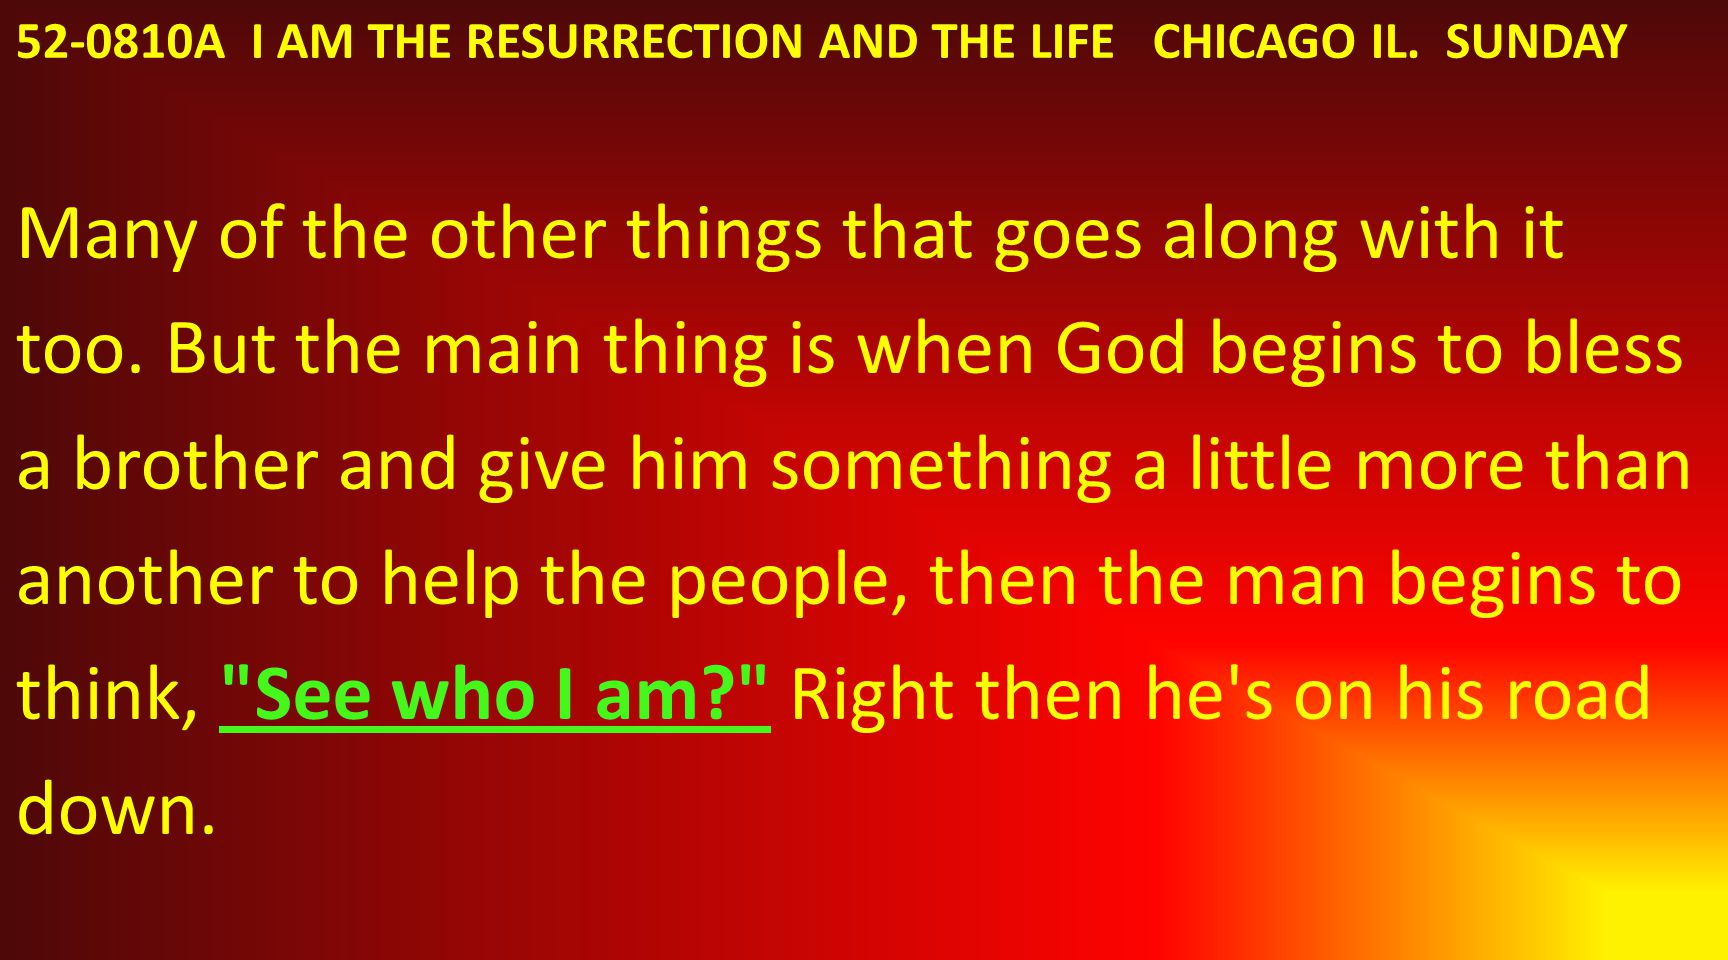 52-0810A I AM THE RESURRECTION AND THE LIFE CHICAGO IL.